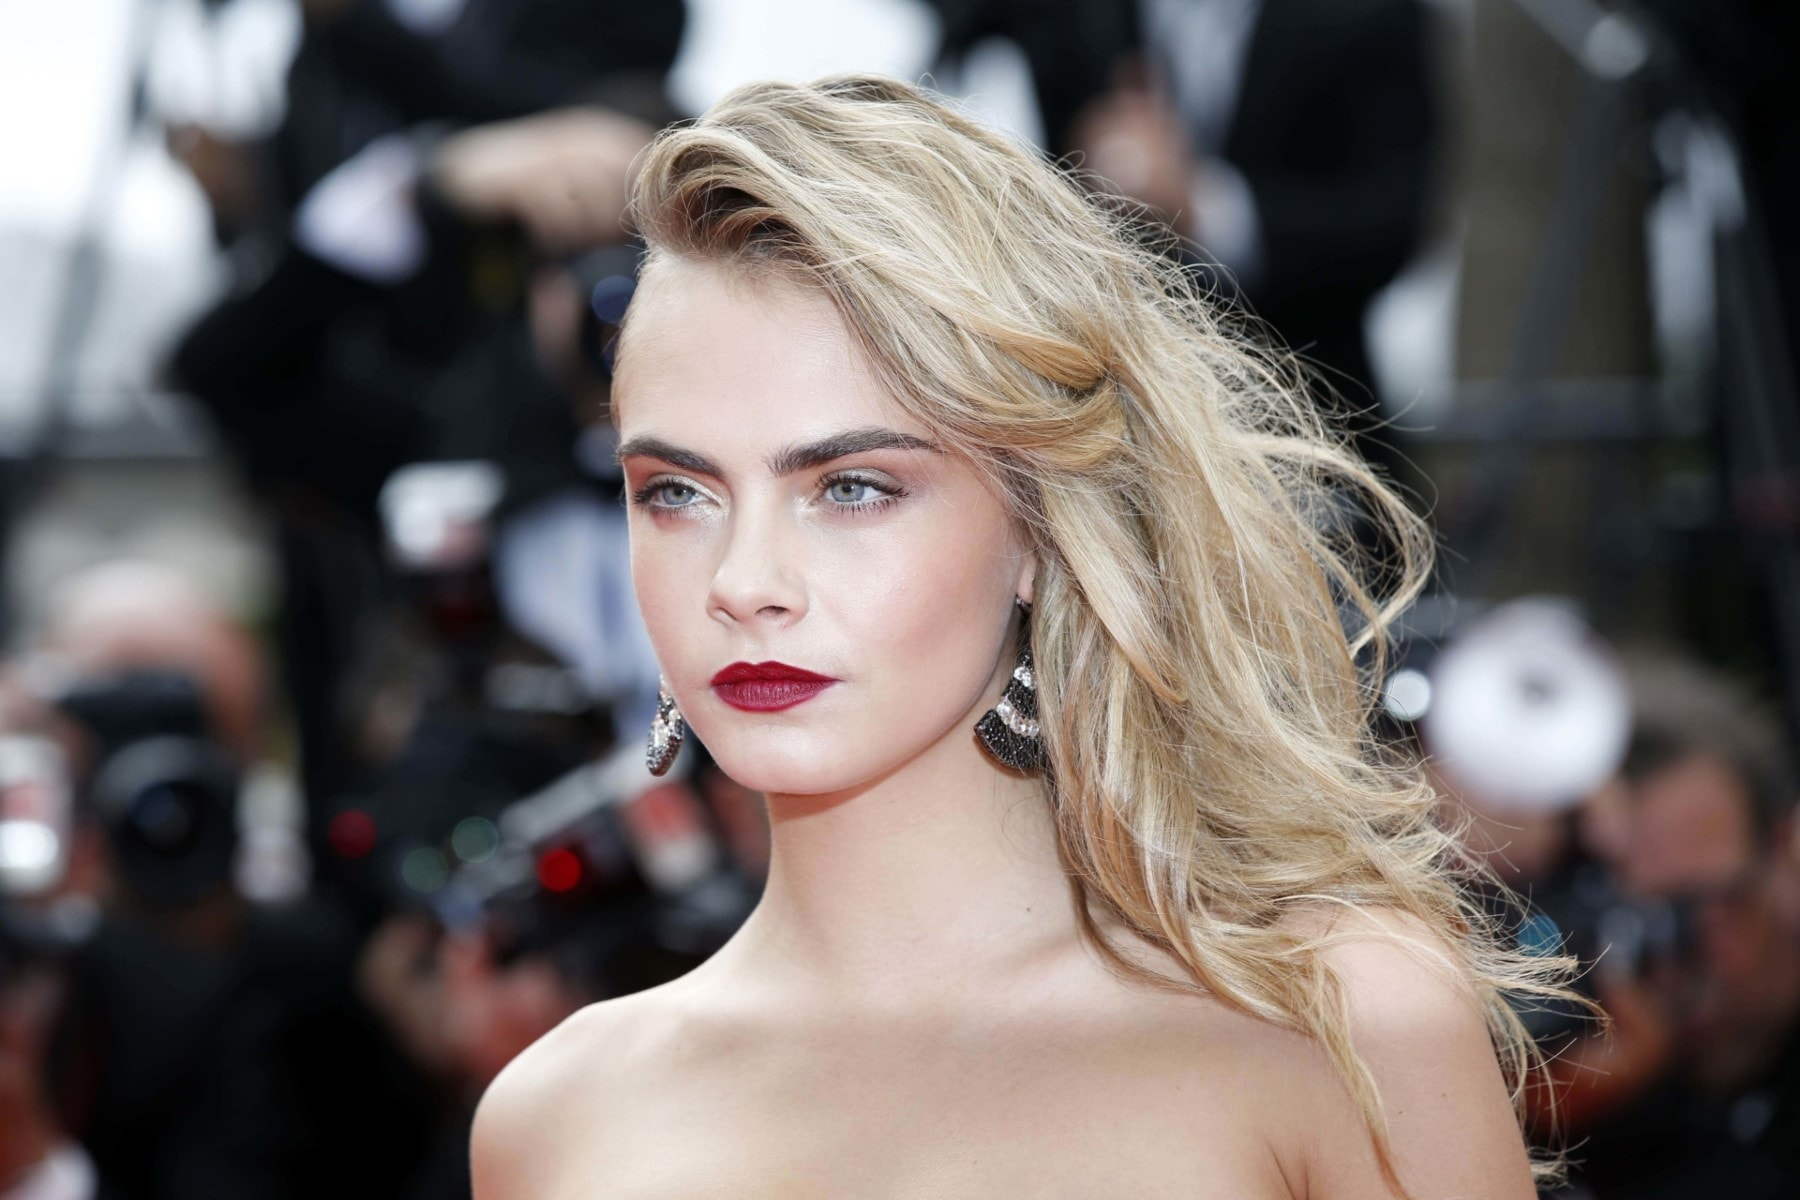 Hair style file: Cara Delevingne